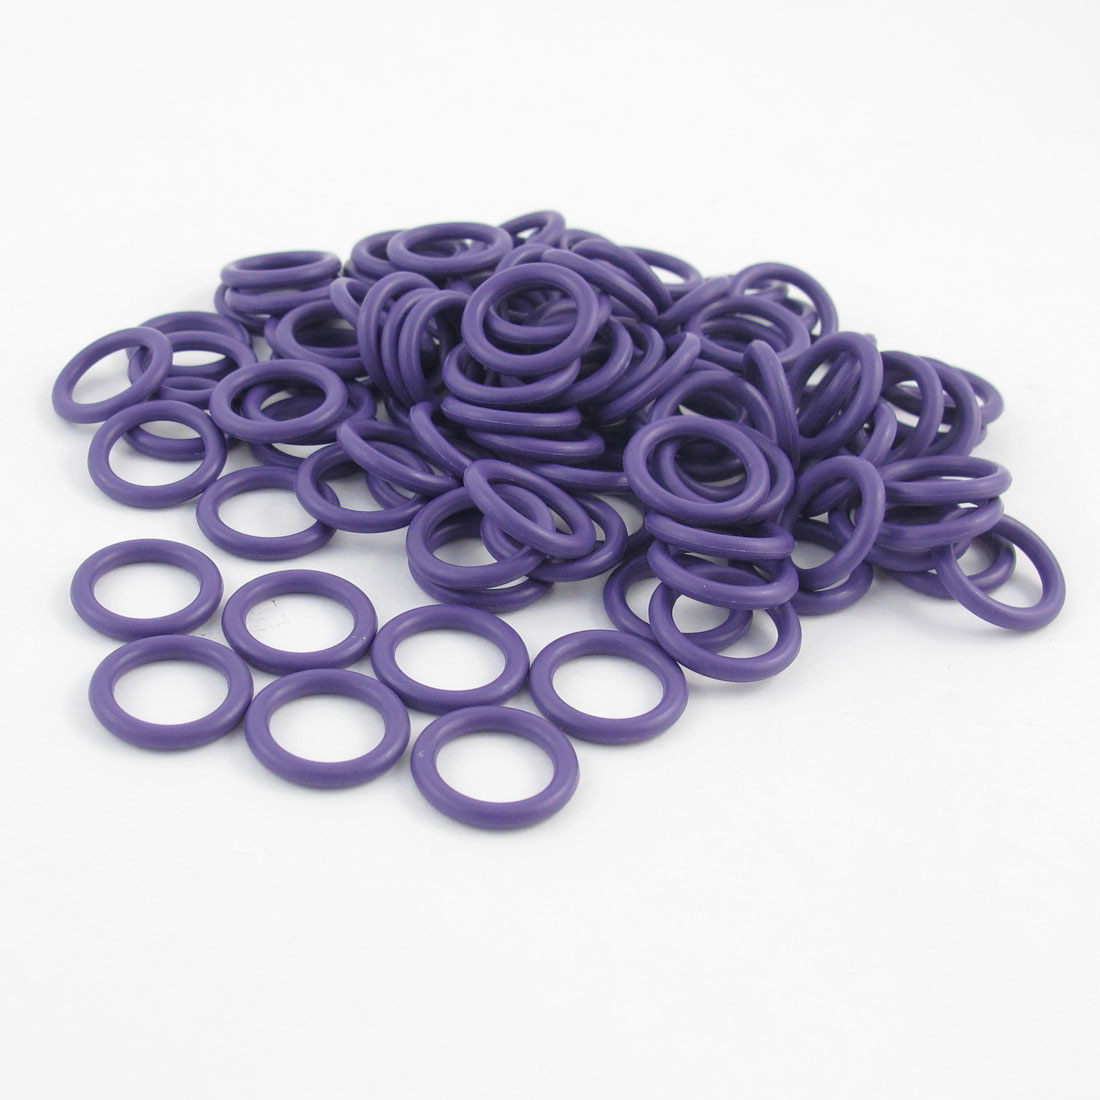 100 Pcs 15.5 x 11.6 x 2.3mm HNBR Air Condition O Rings Purple for Auto Car